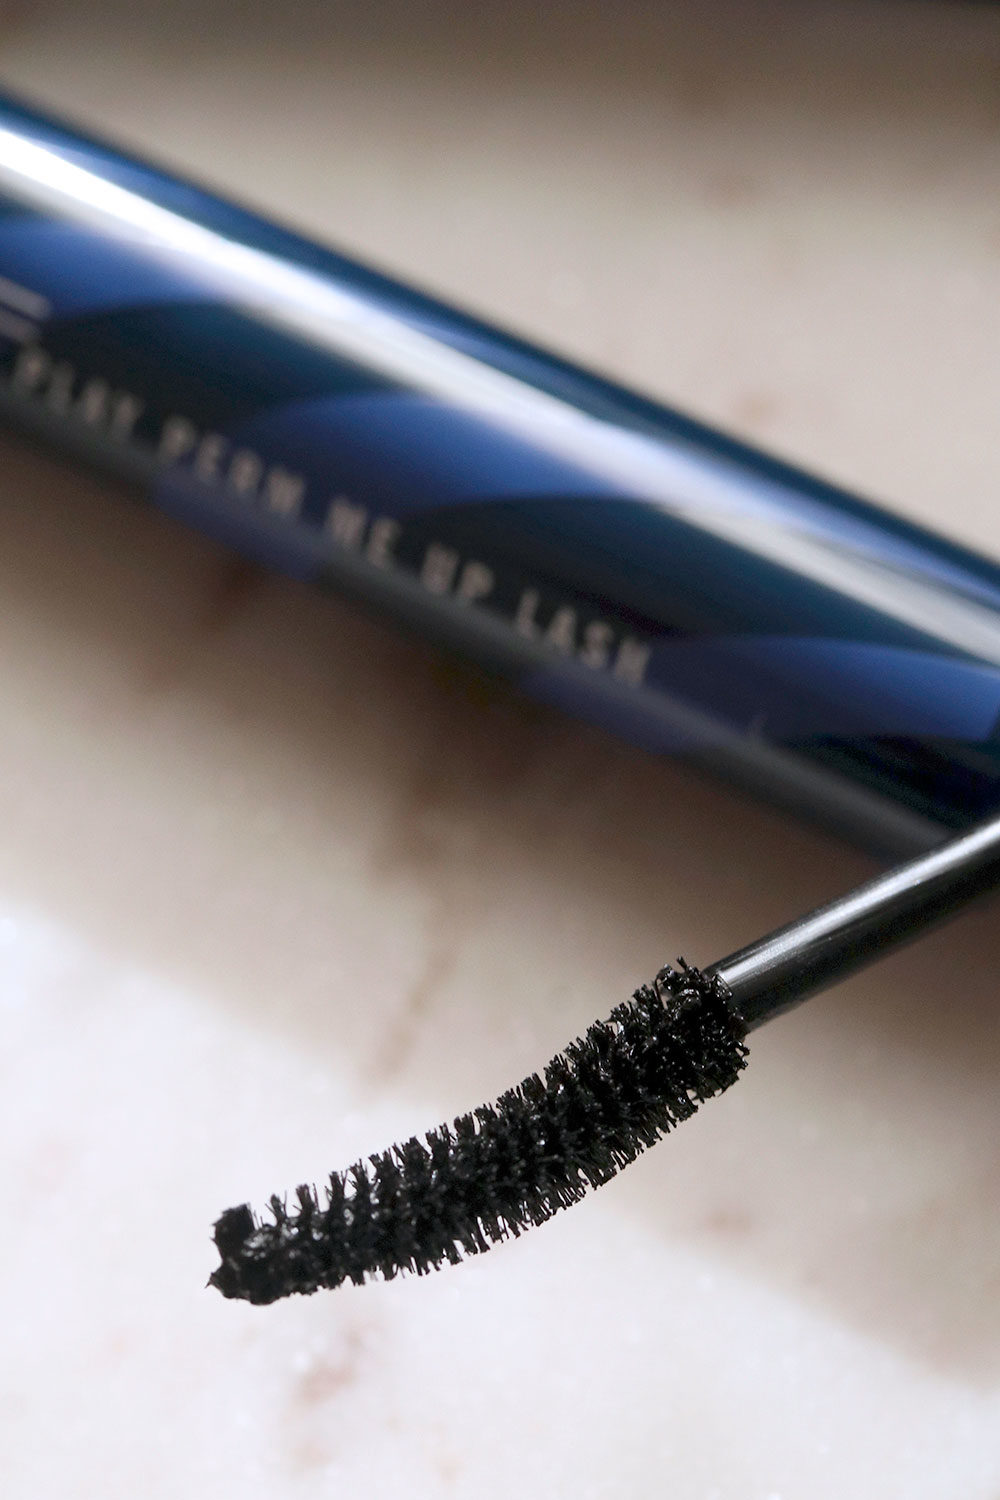 mac extended play perm me up lash brush